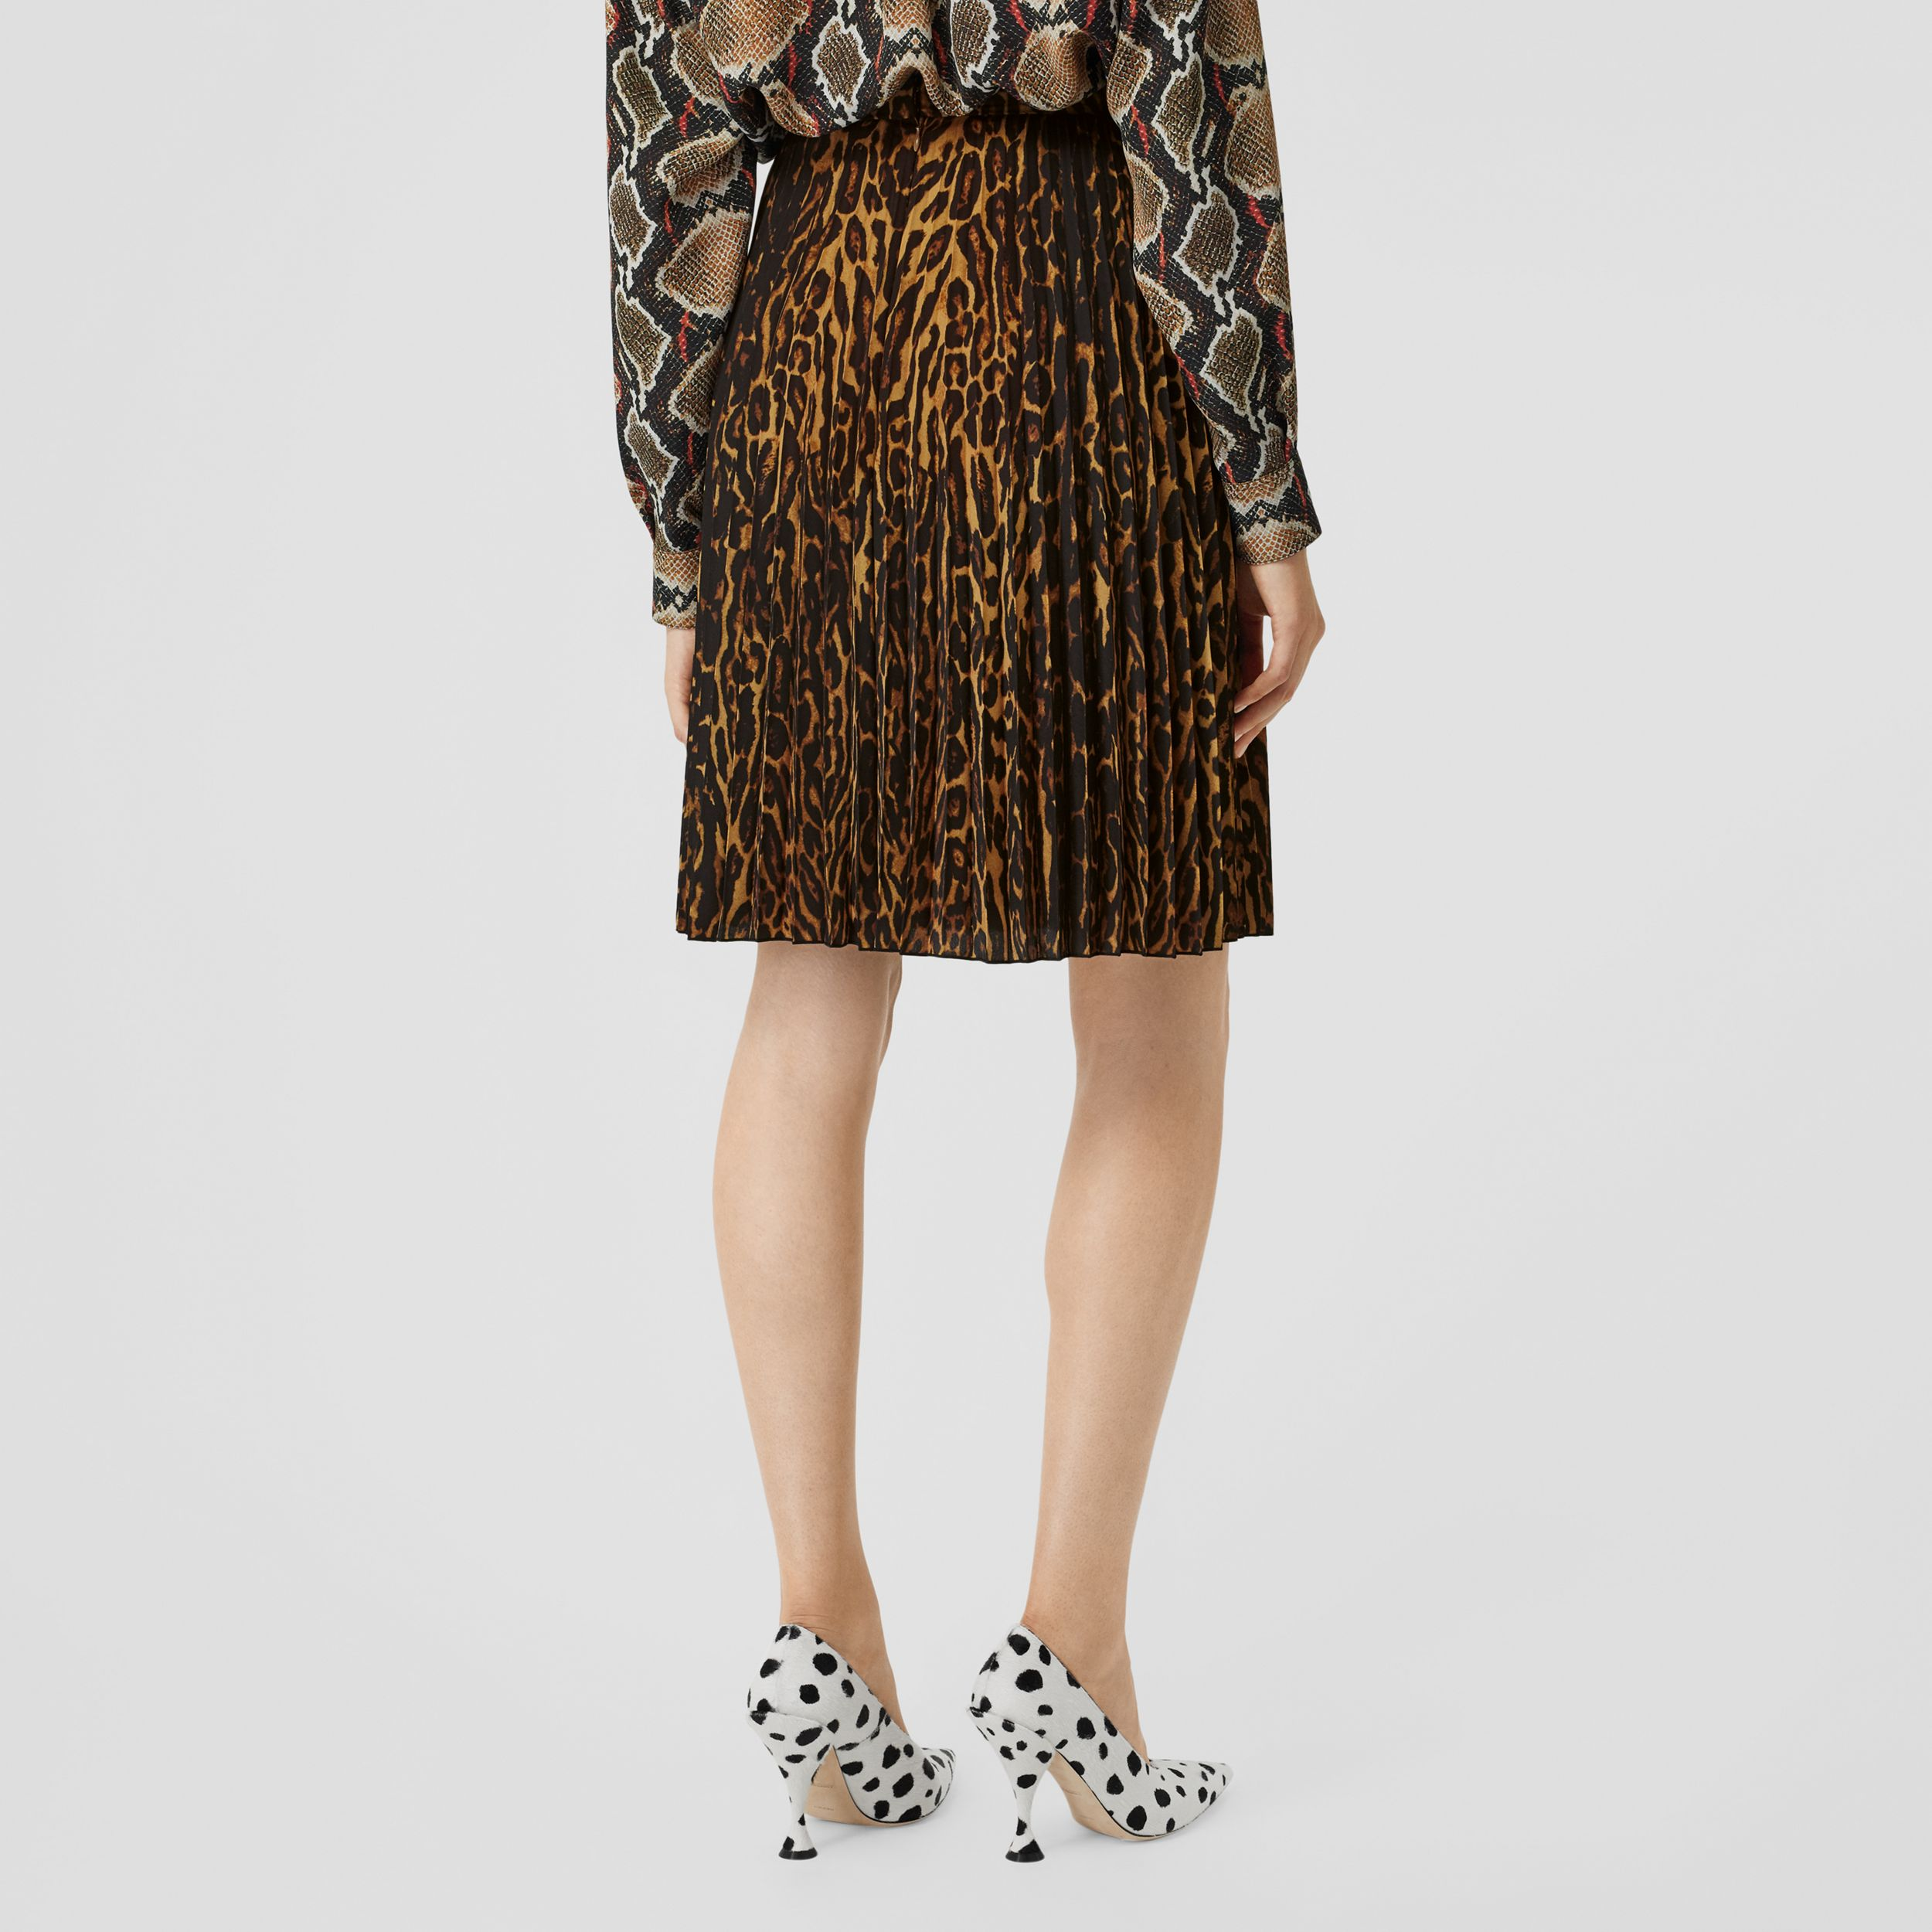 Leopard Print Pleated Skirt in Dark Mustard - Women | Burberry - 3